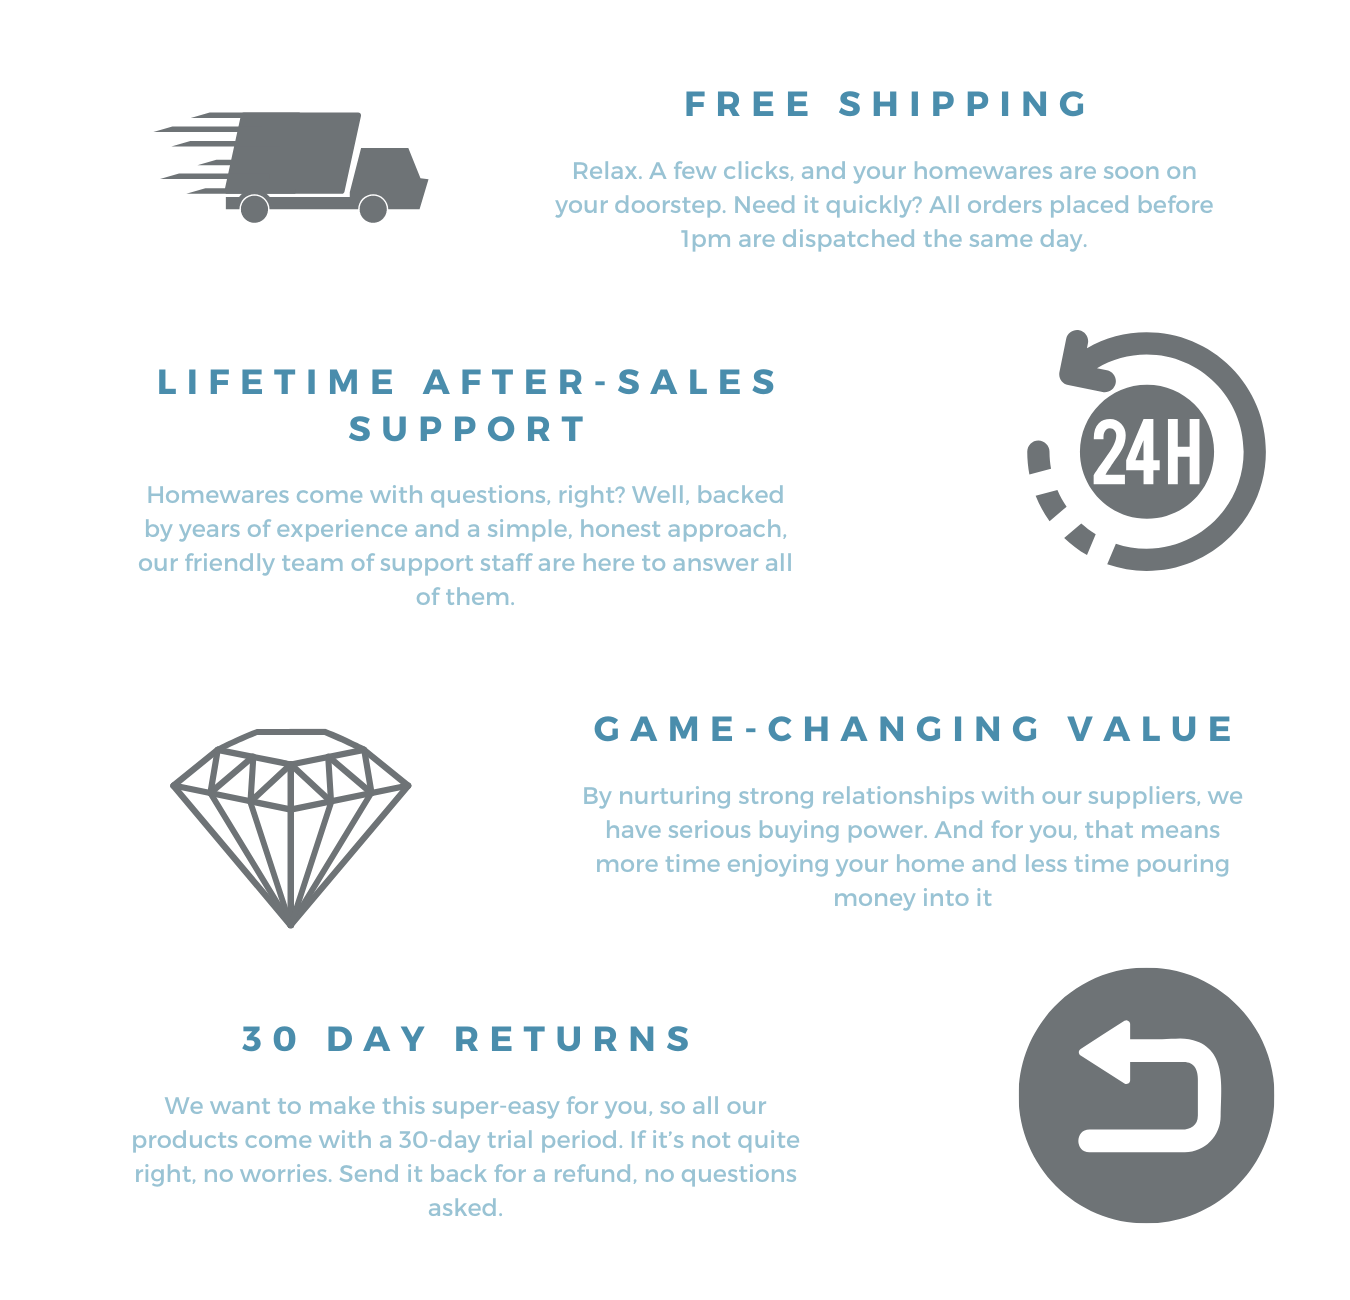 Free Shipping - Lifetime After-sales Support - Game-changing Value - 30 Day Returns